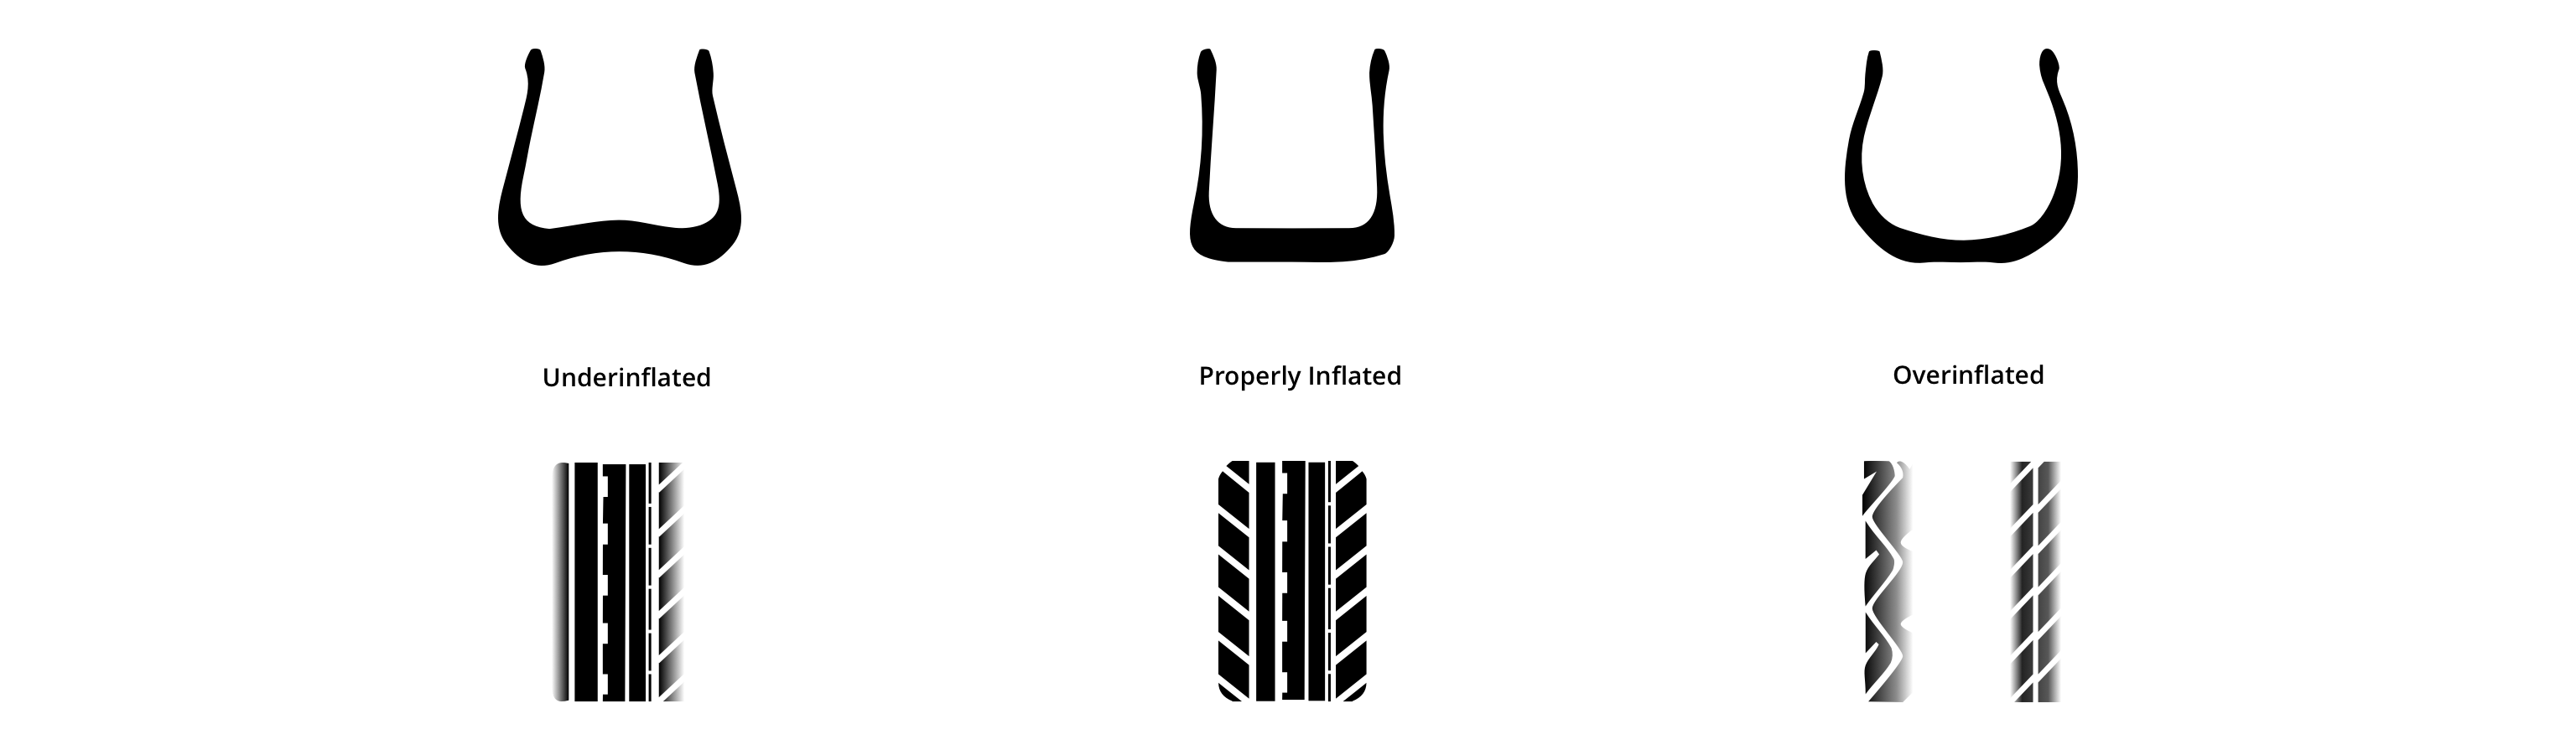 RV Tire Inflation and Tire Wear